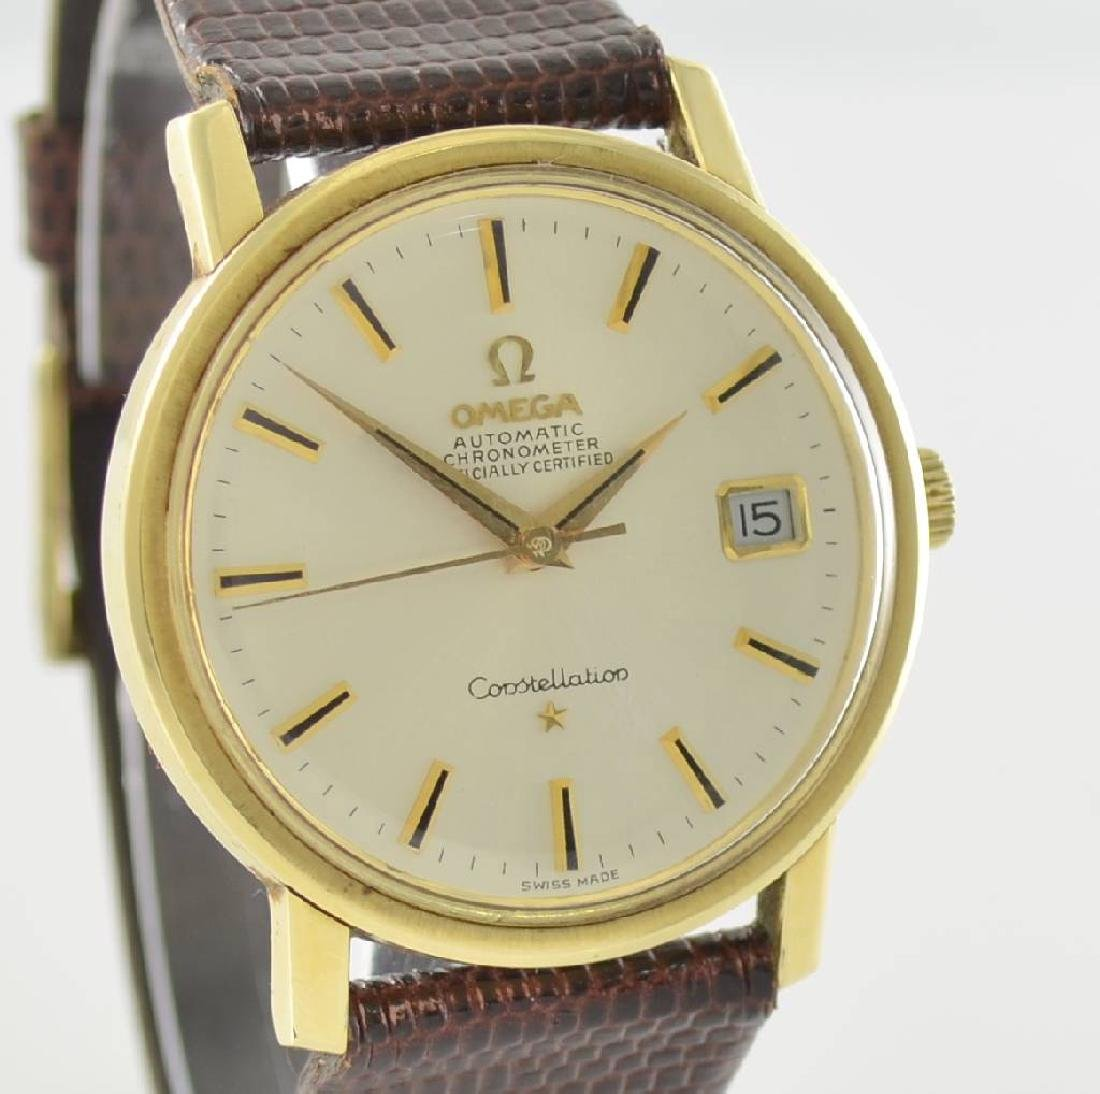 OMEGA Constellation gents wristwatch - 6